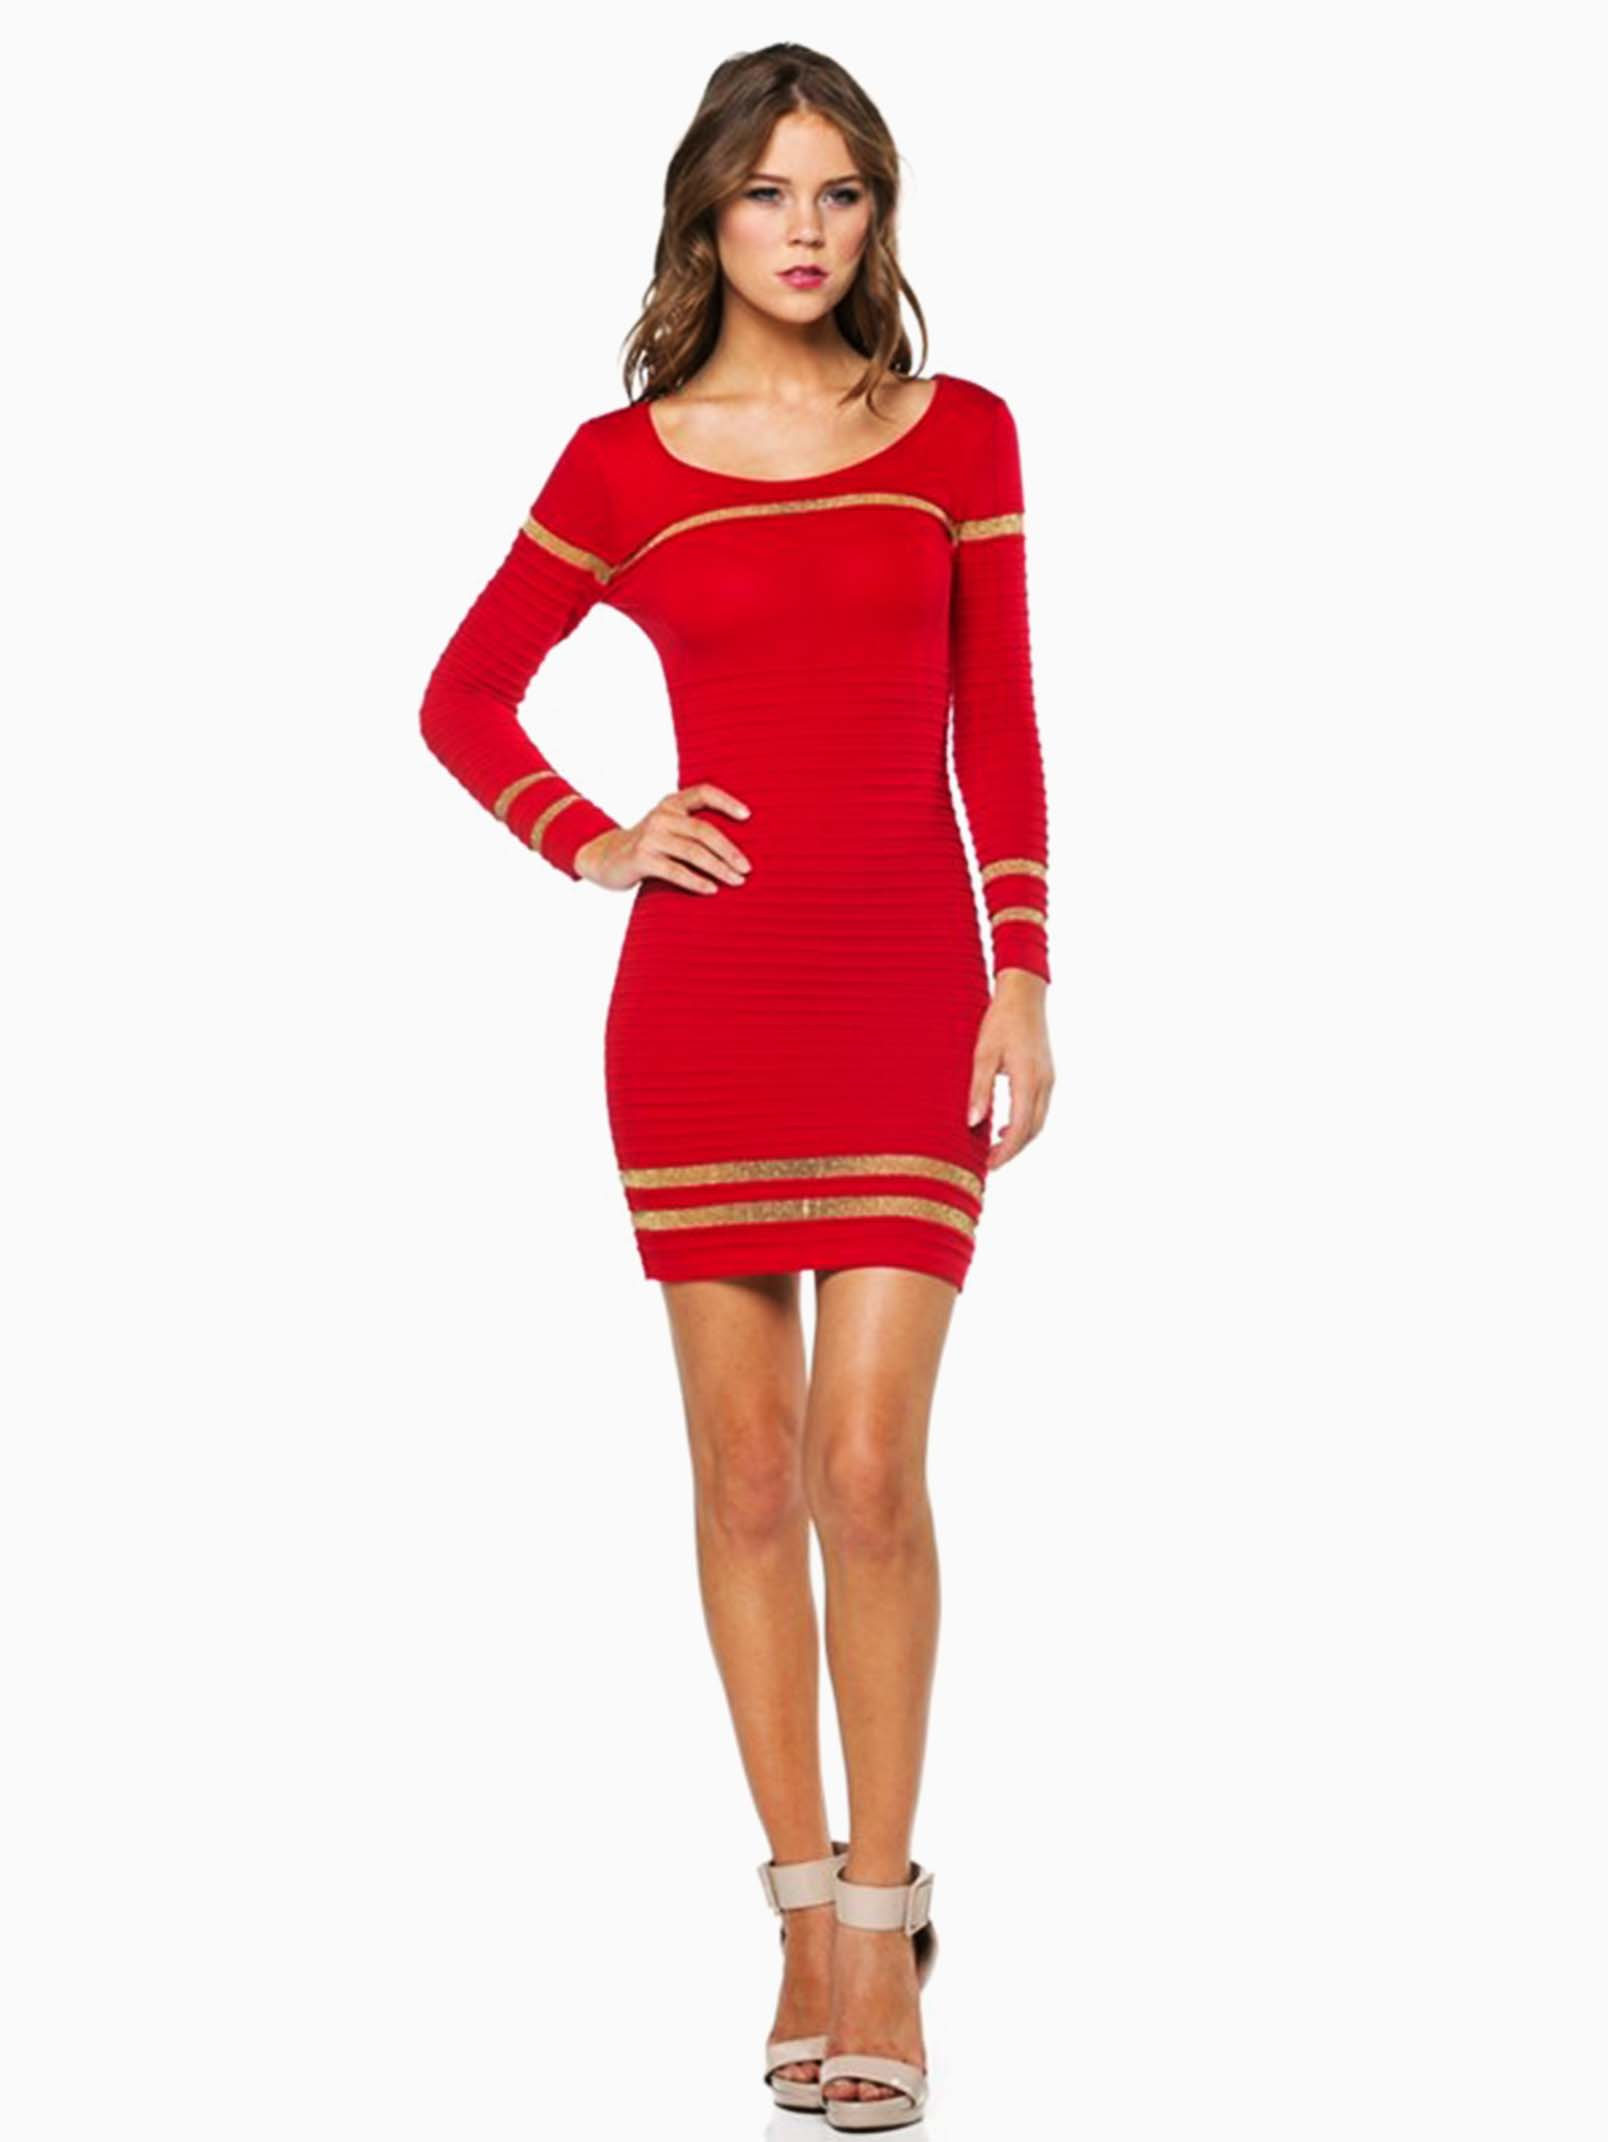 8f8ec0bf7d Hera Collection Red Ribbed Shimmer Striped Short Sweater Dress ...